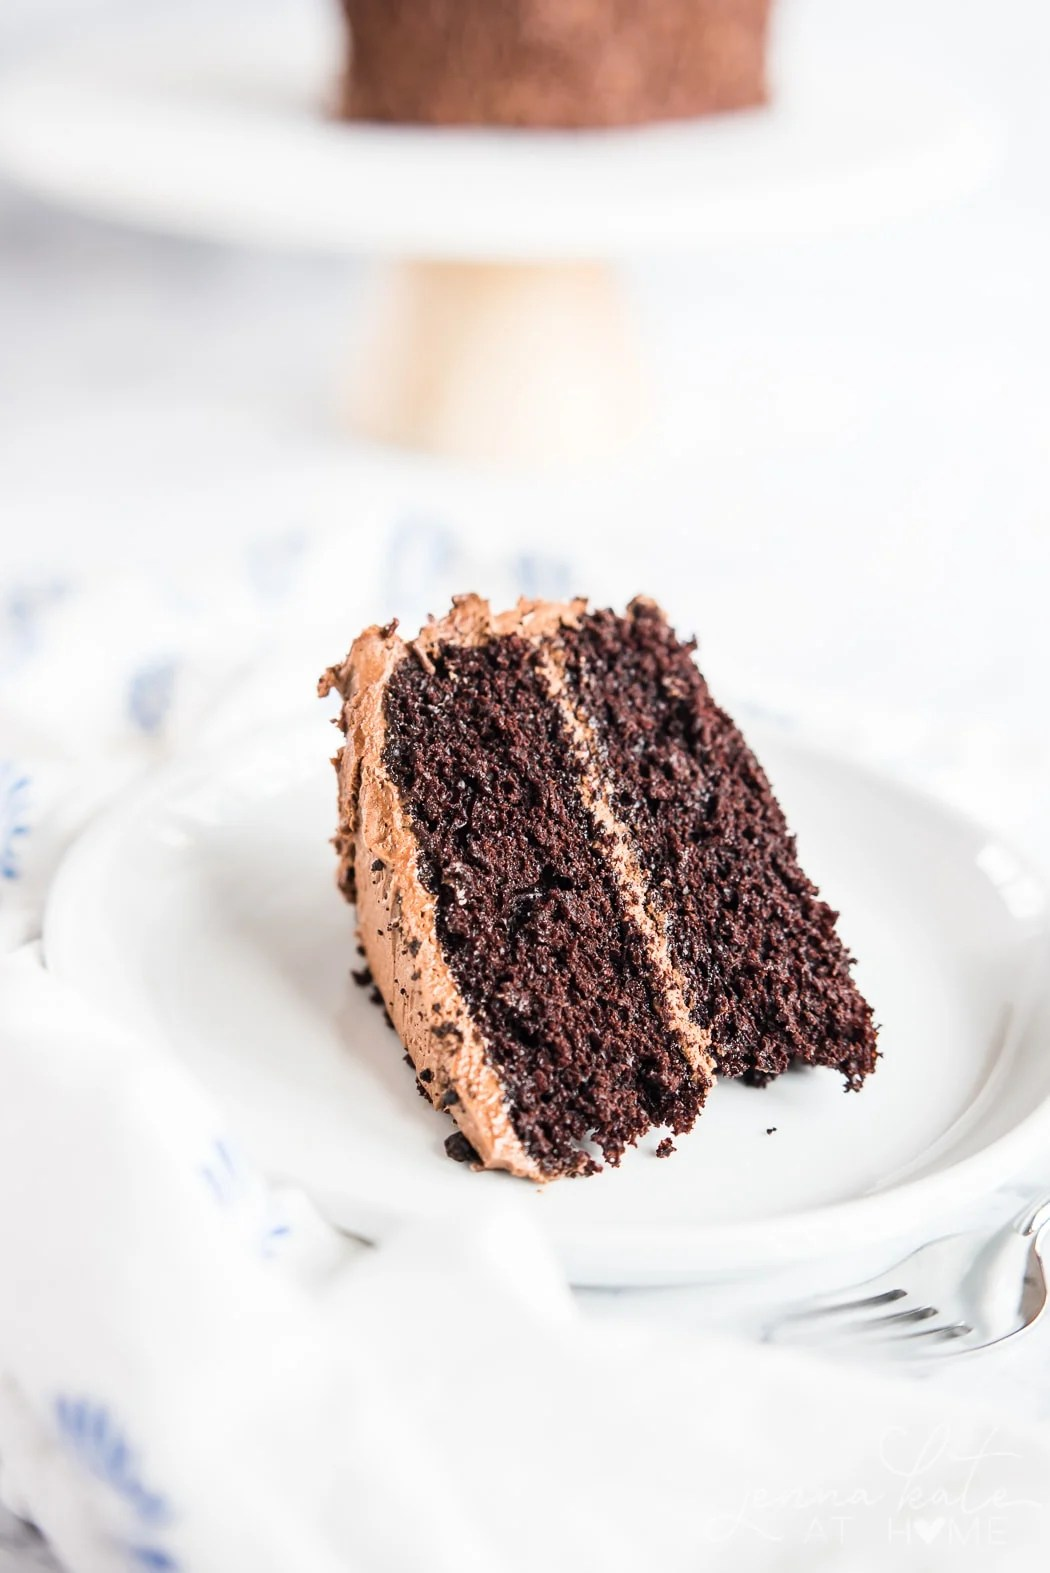 Slice of homemade chocolate cake with buttercream frosting